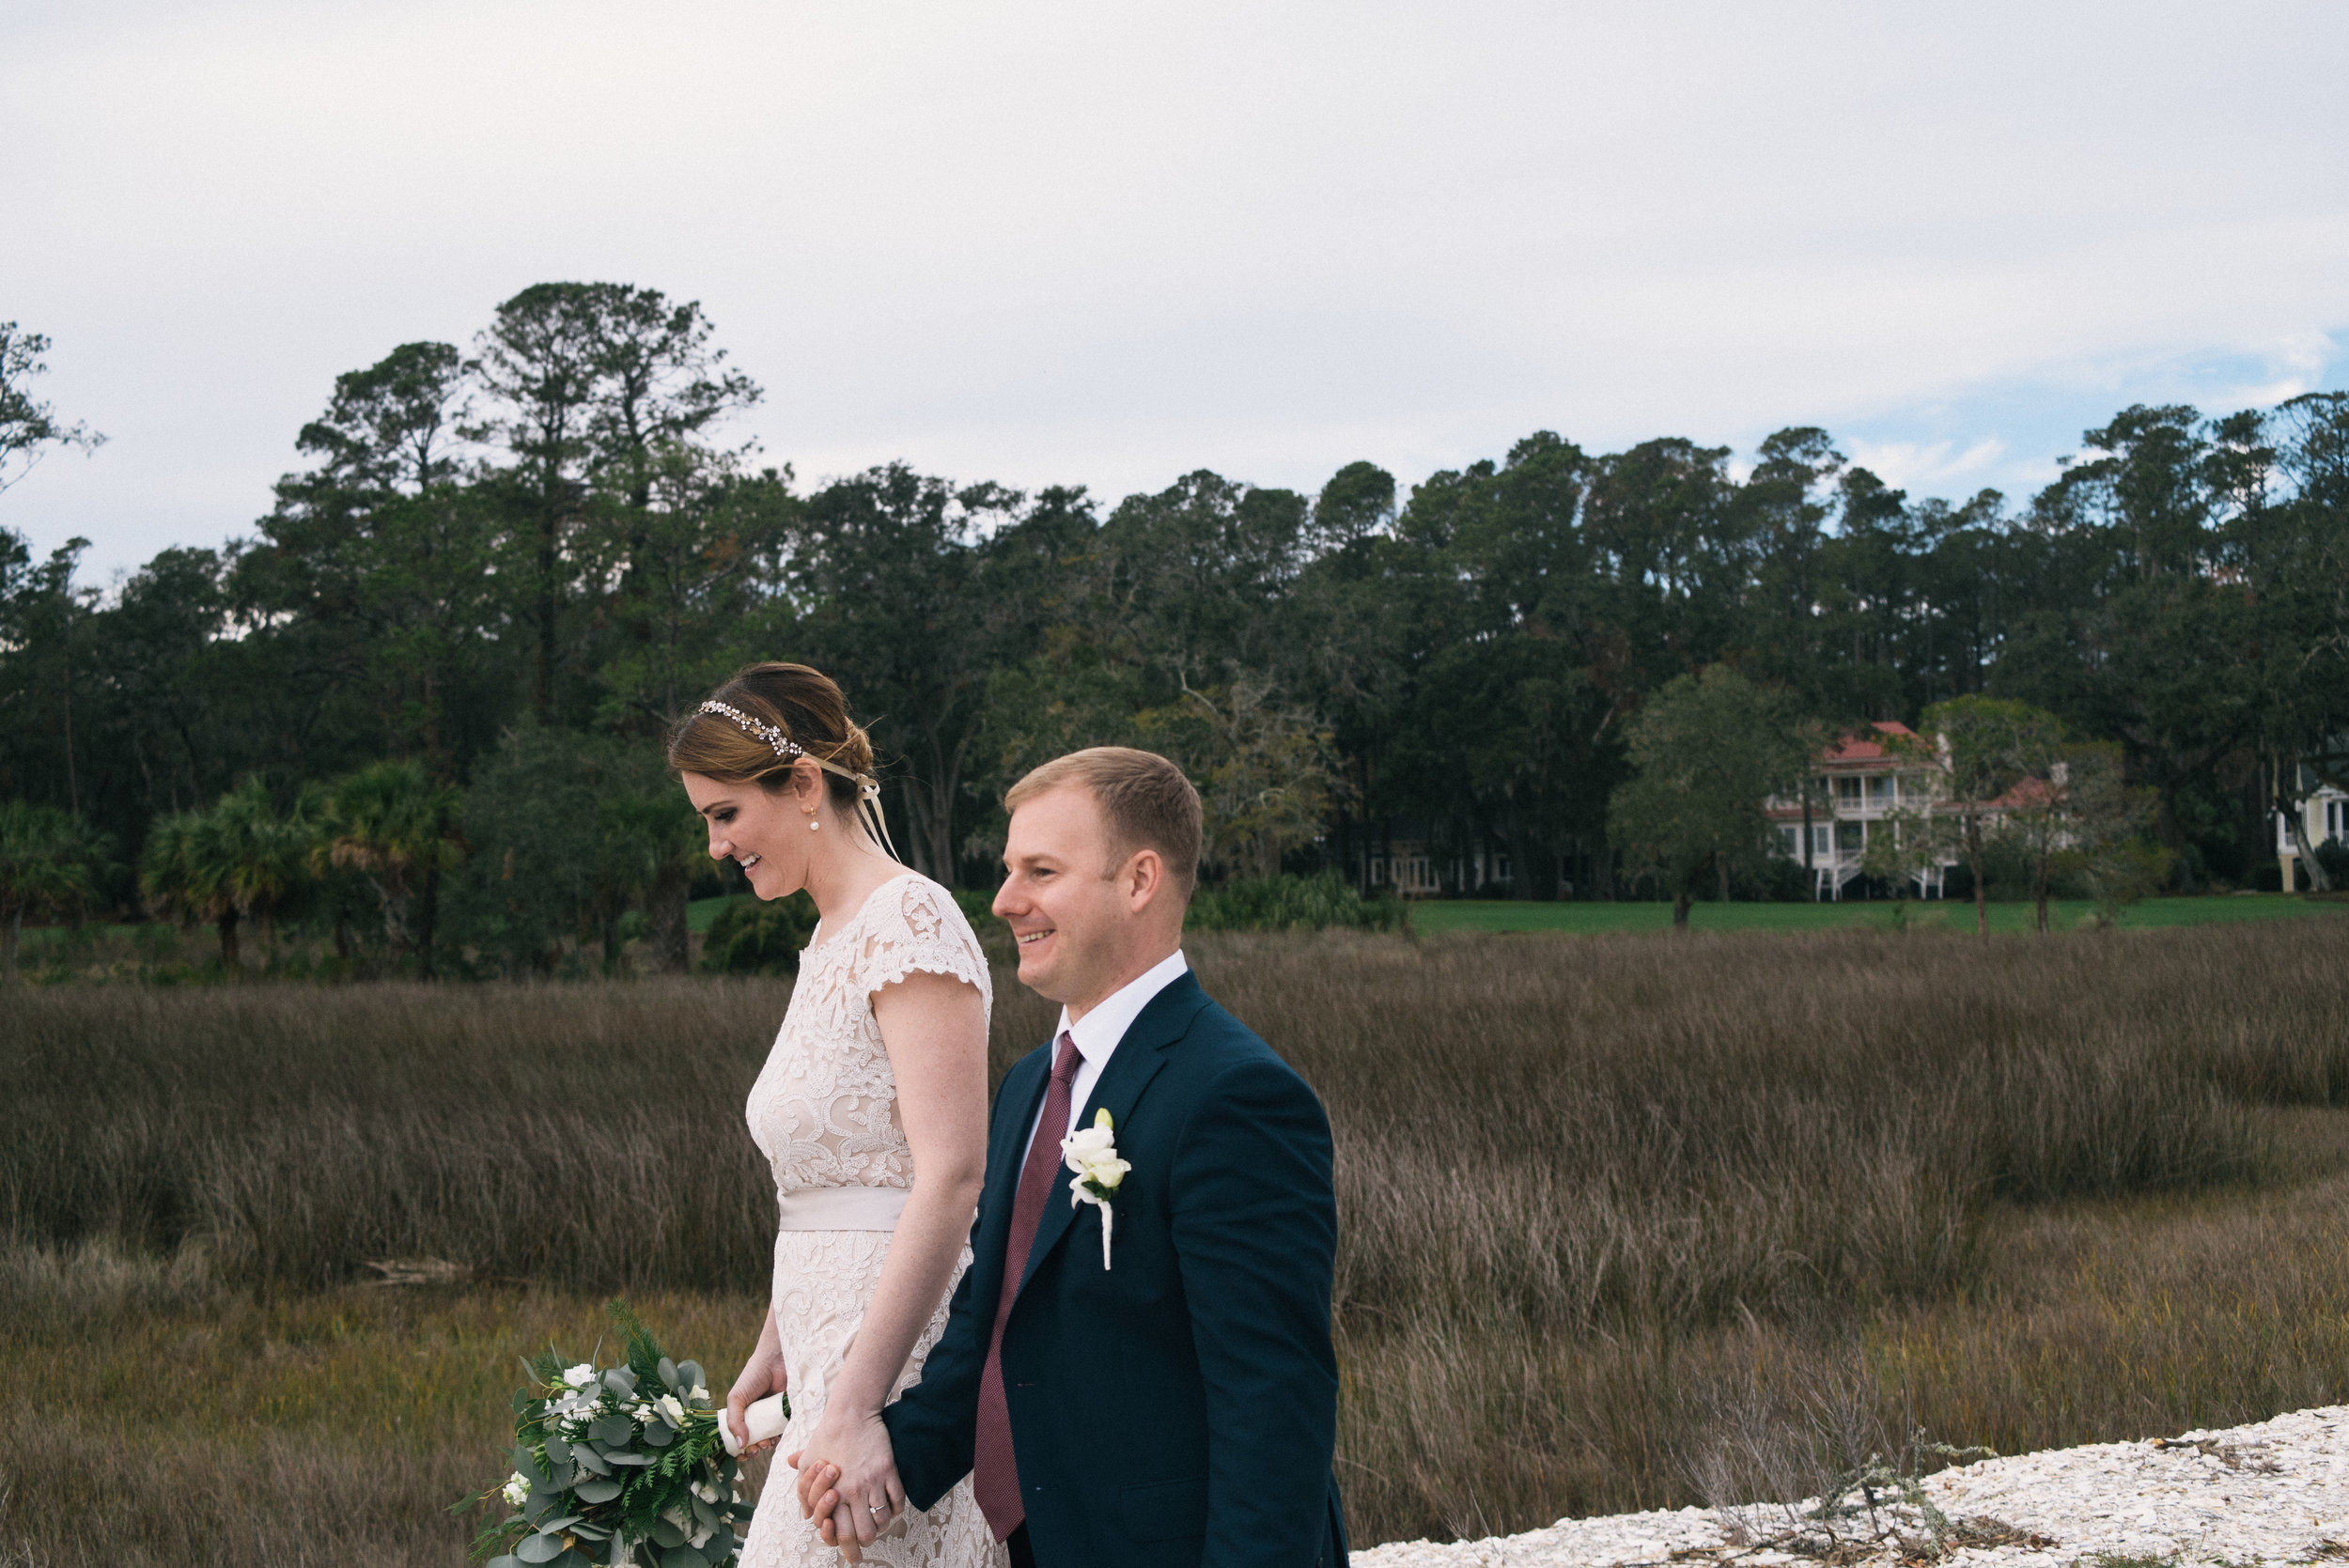 emily-and-david-daufuskie-island-wedding-december-wedding-meg-hill-photo- (461 of 728).jpg